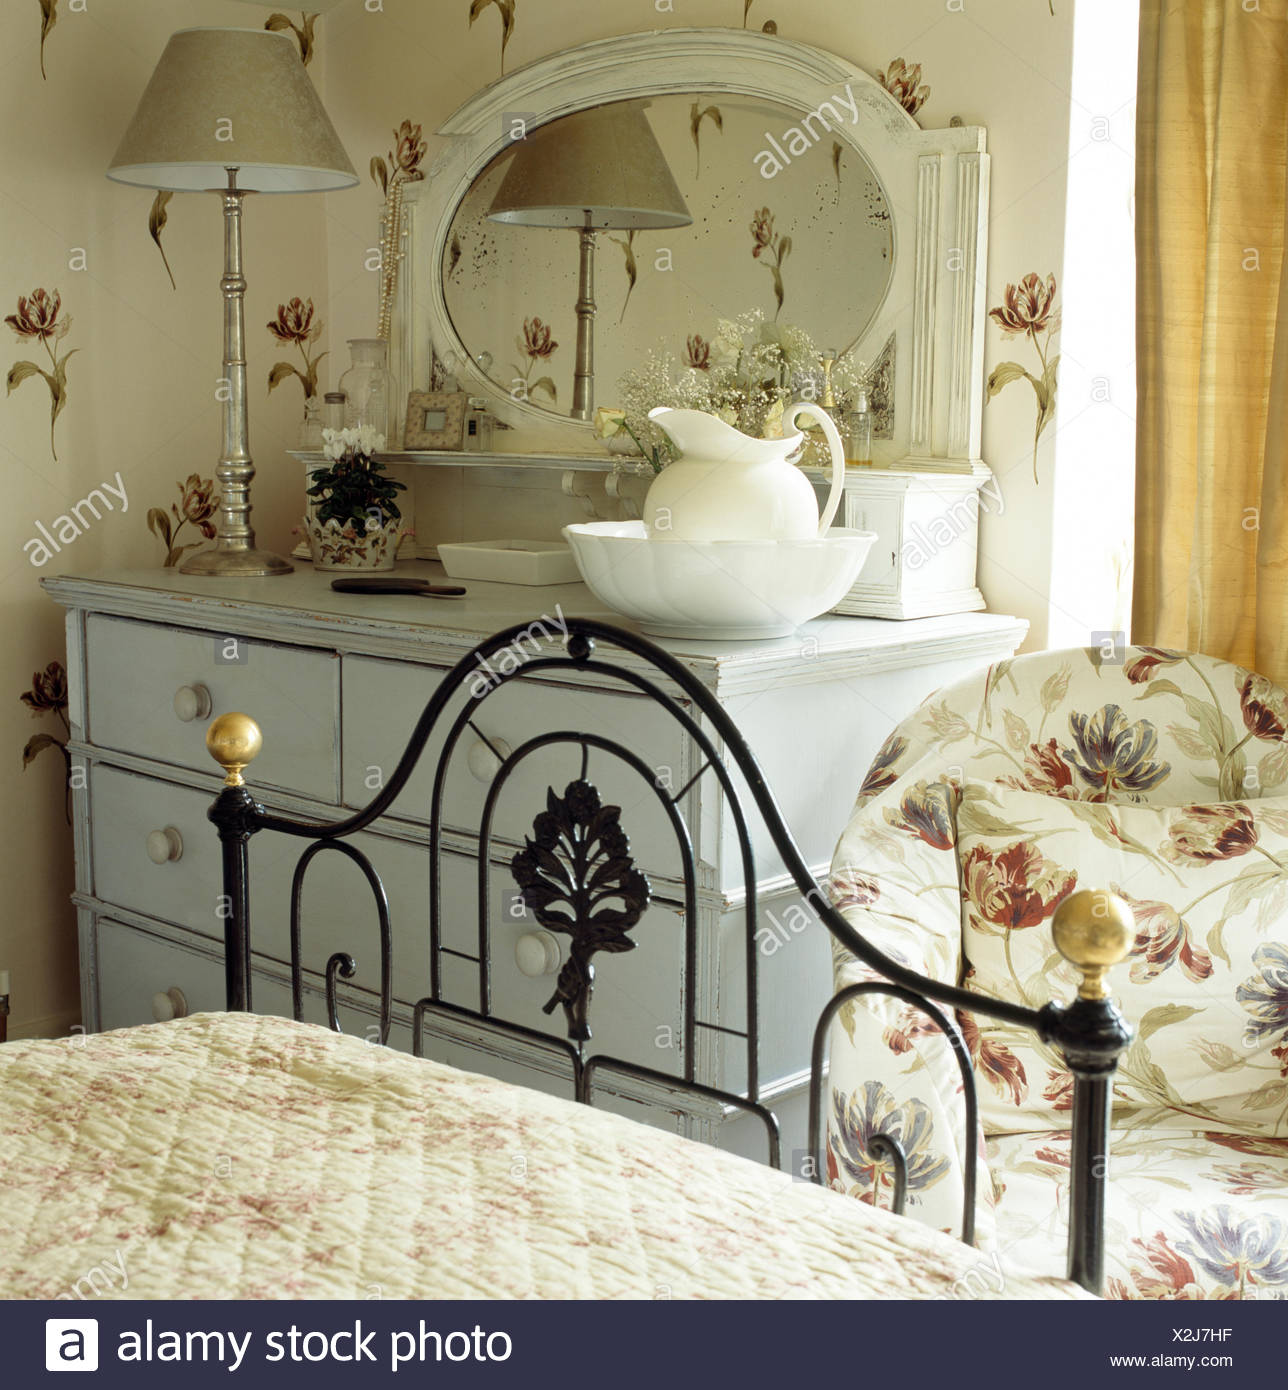 Picture of: Ornate Black Wrought Iron Bed In Cottage Bedroom With Tulip Patterned Chair And Painted Chest Of Drawers Stock Photo Alamy